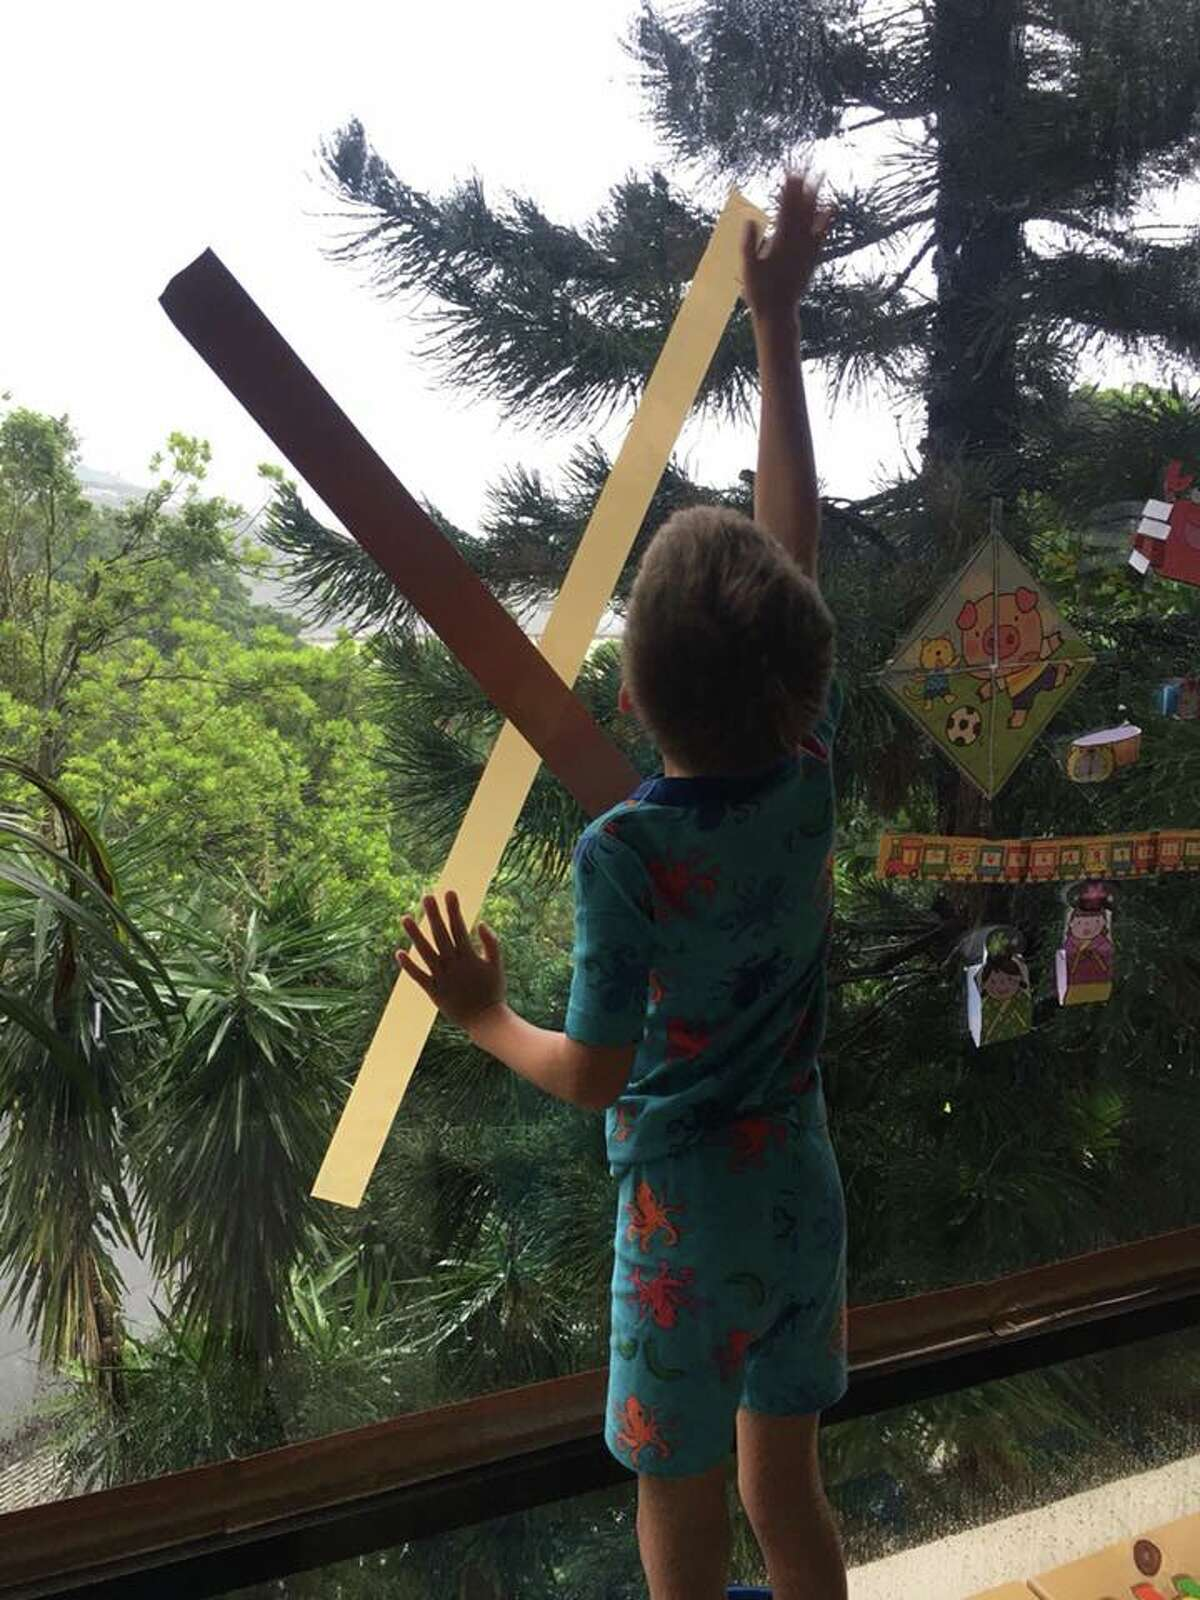 Knapp's grandson Cooper helping tape up windows before Typhoon Mangkhut arrives in Hong Kong.